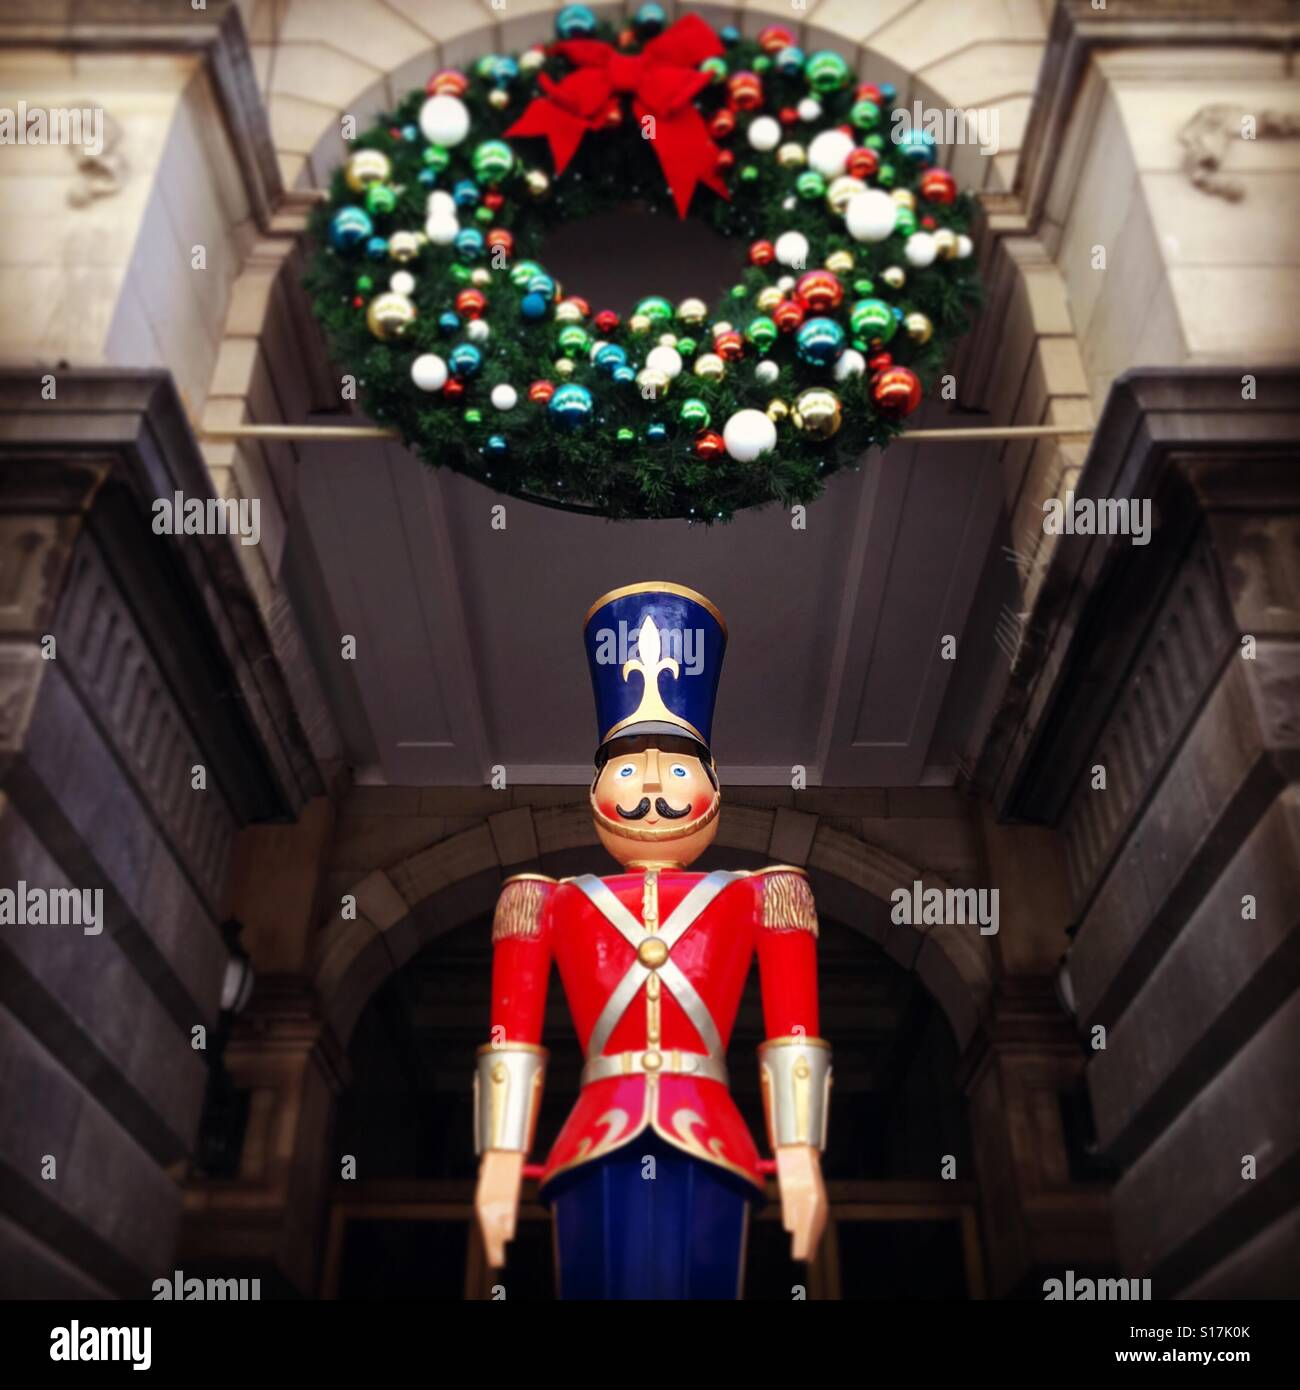 christmas soldier and wreath decorations on melbourne town hall stock image - Christmas Soldier Decorations